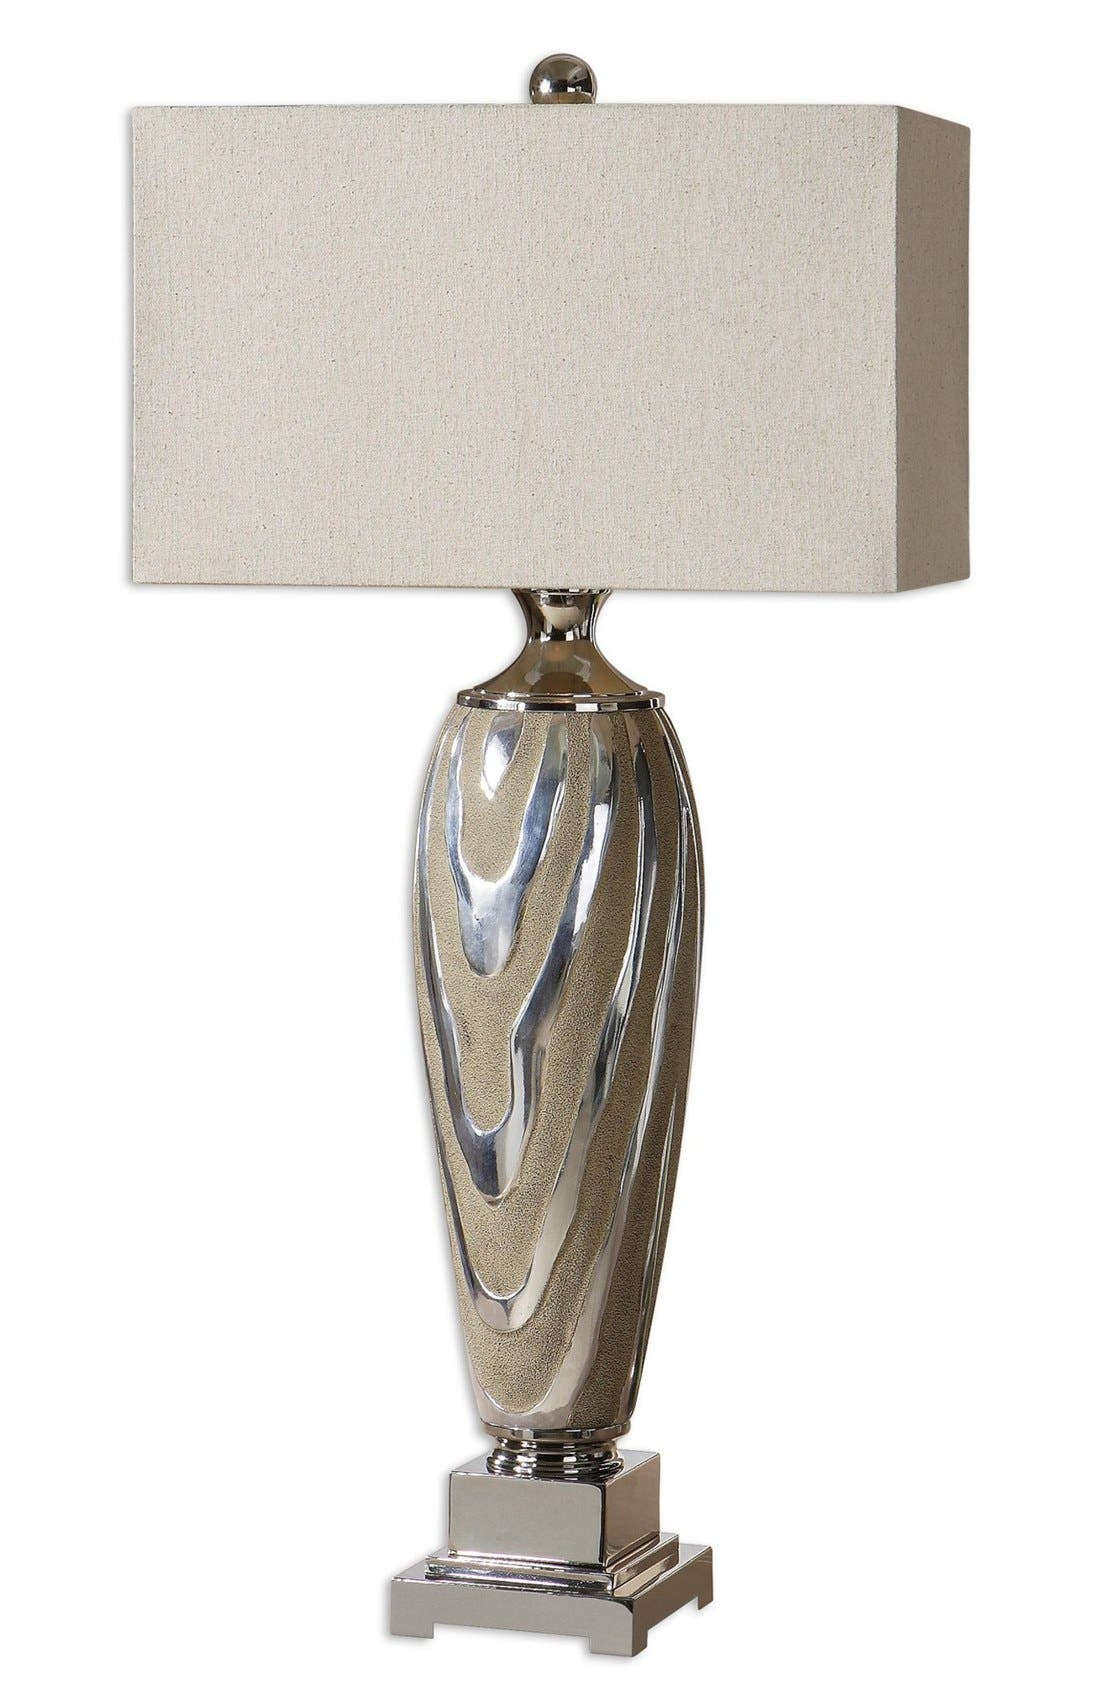 'Allegheny' Ceramic Table Lamp,                             Main thumbnail 1, color,                             020